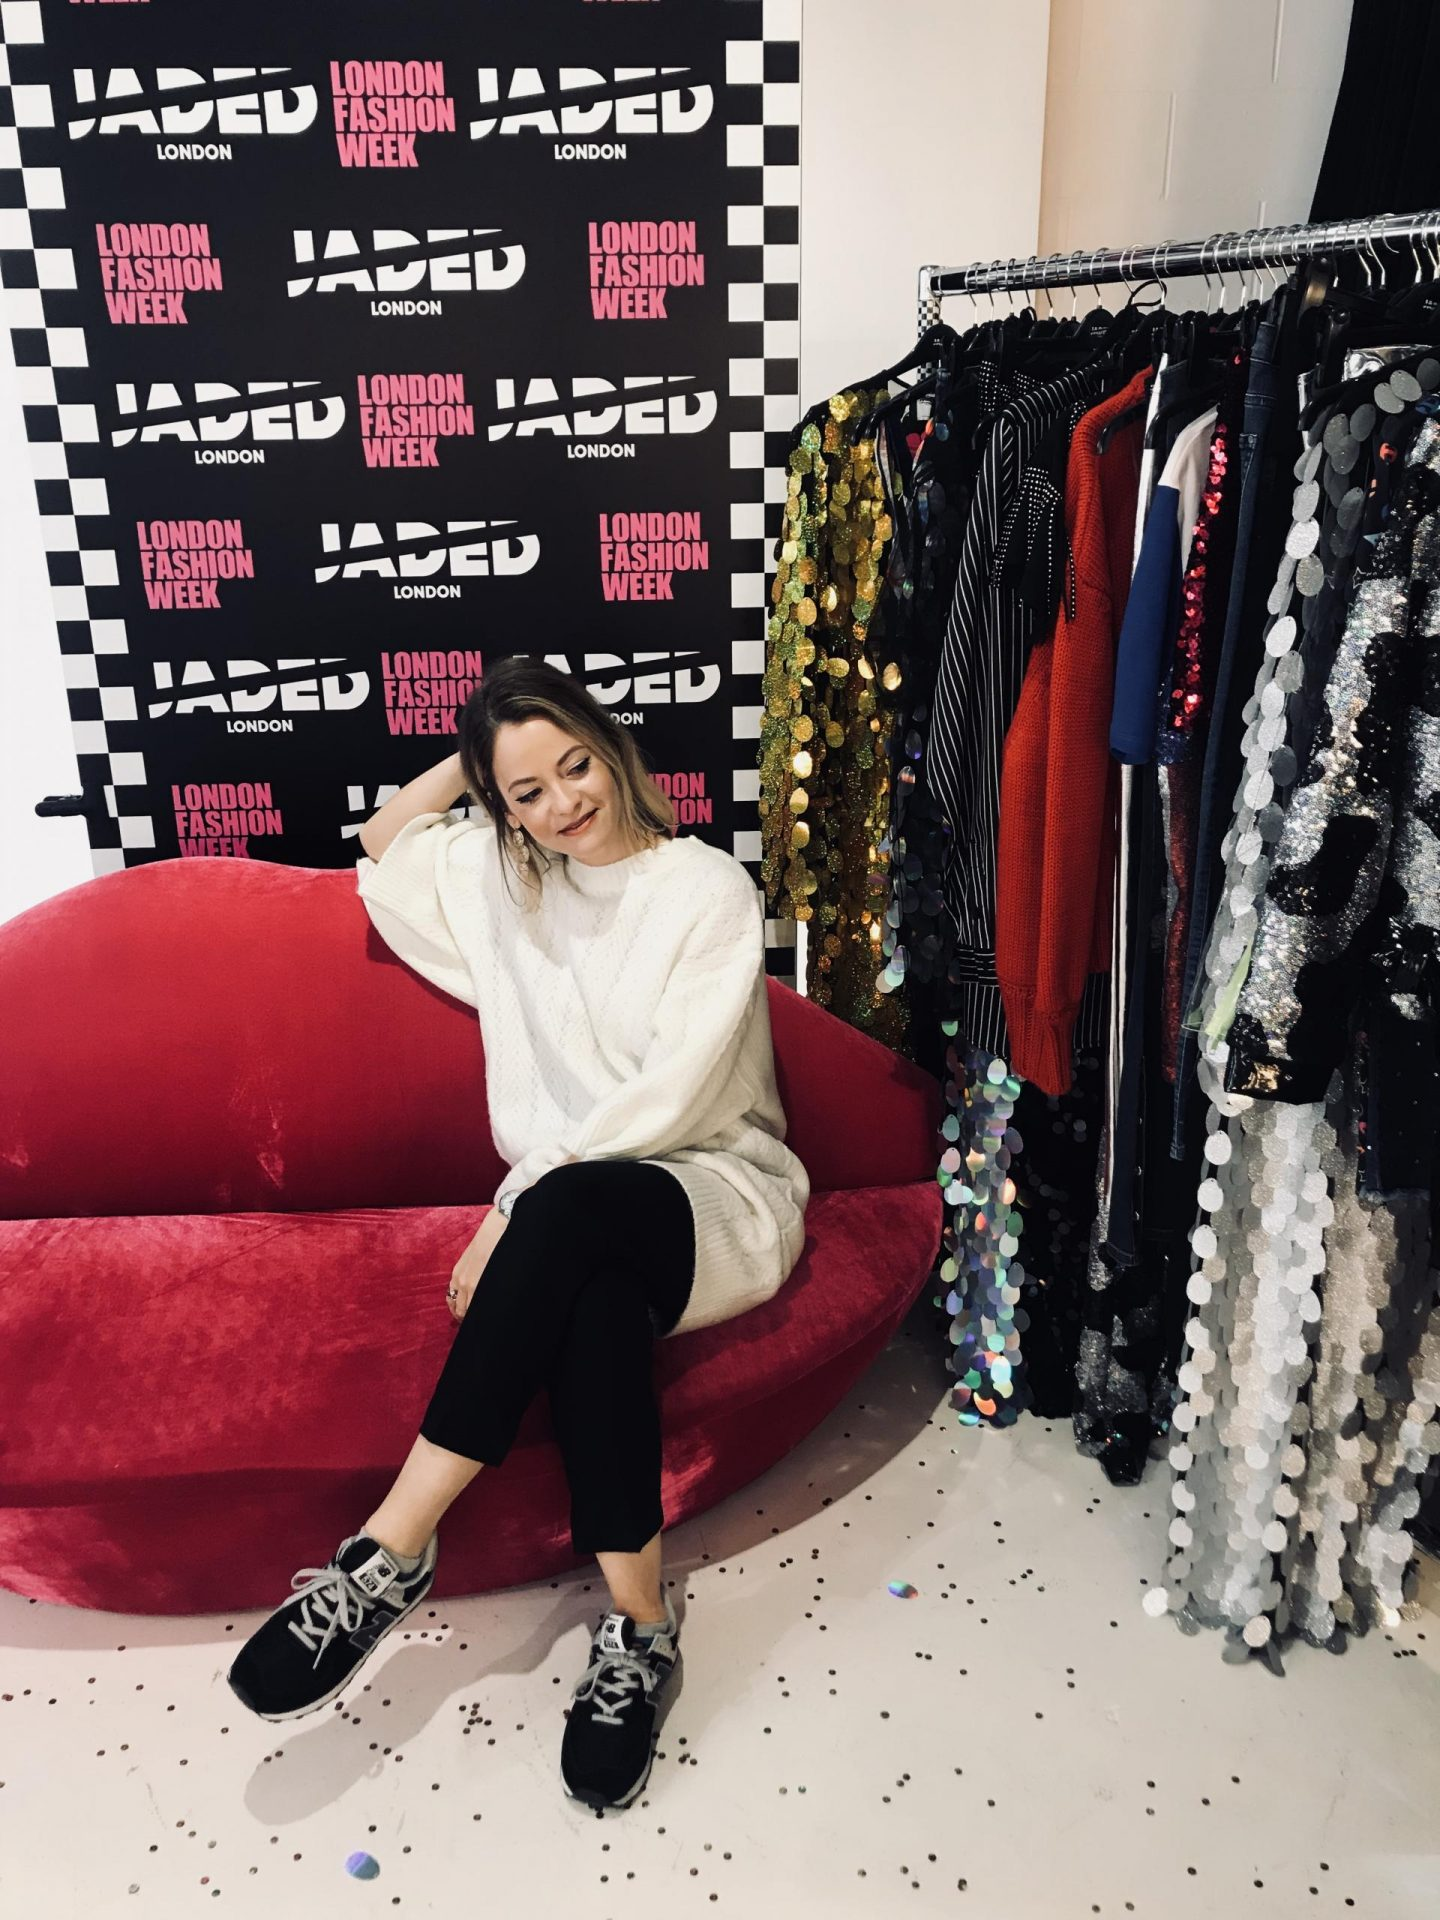 Smashbox event with Jaded London